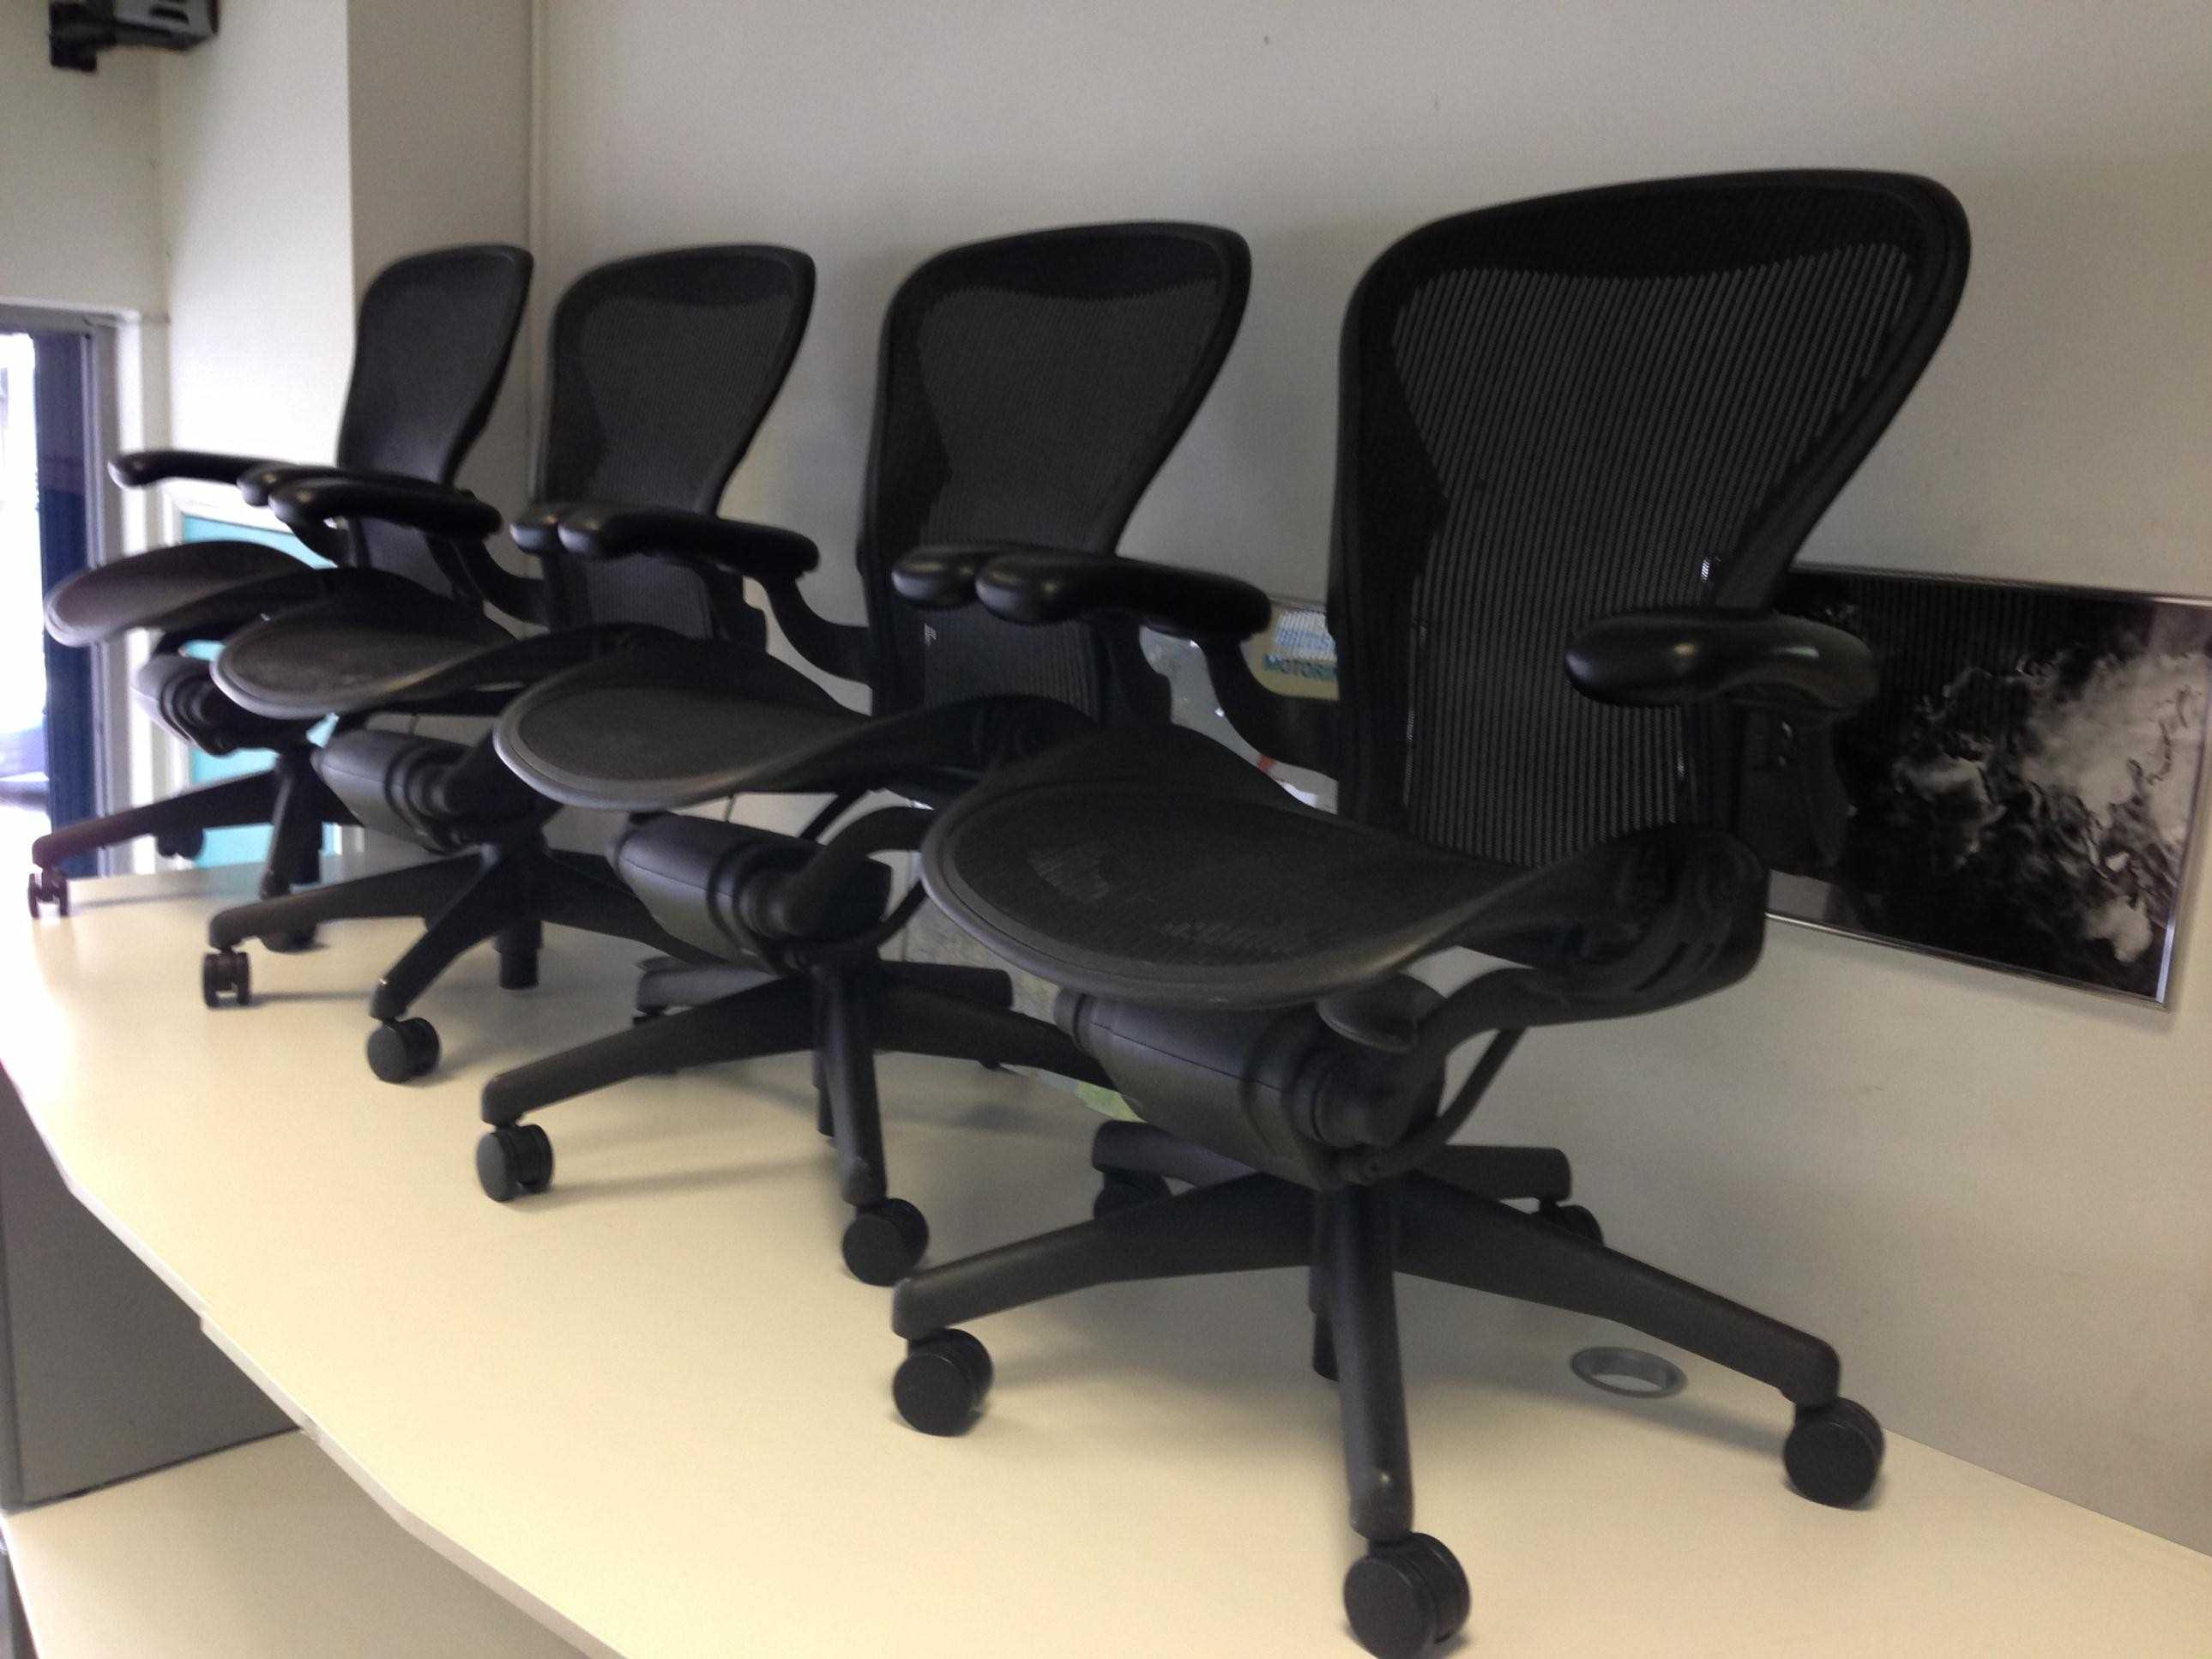 sell your aeron chair to a reputed company for a hassle